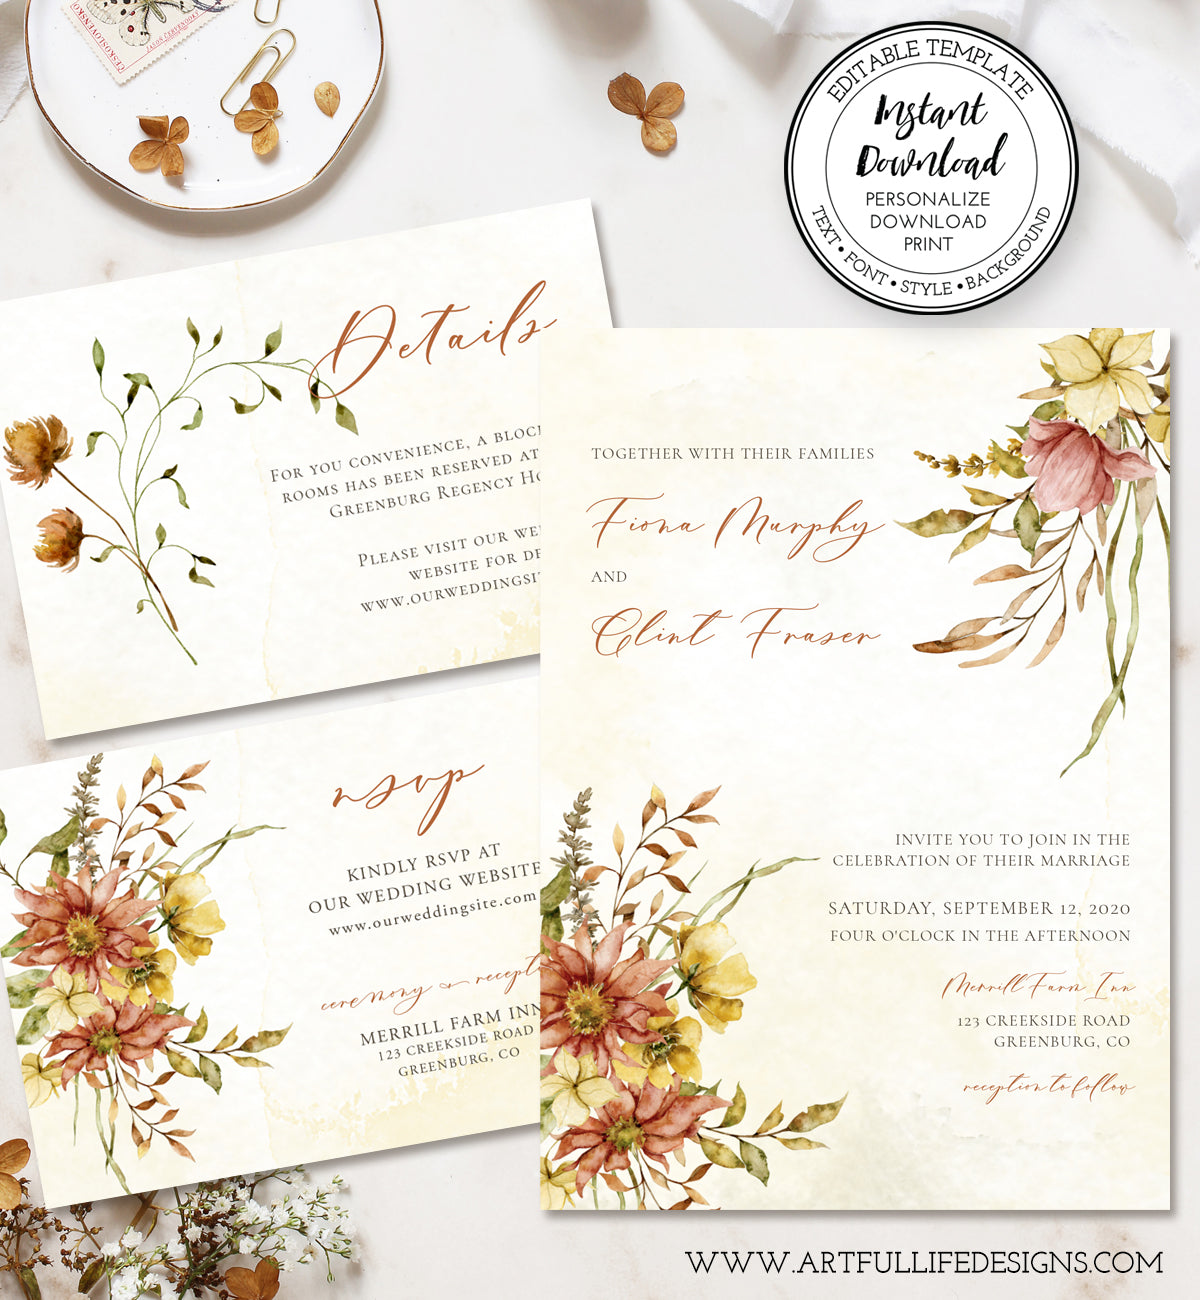 Fall Floral Wedding Invitation Suite including invitation, RSVP, Details card, Editable Templates